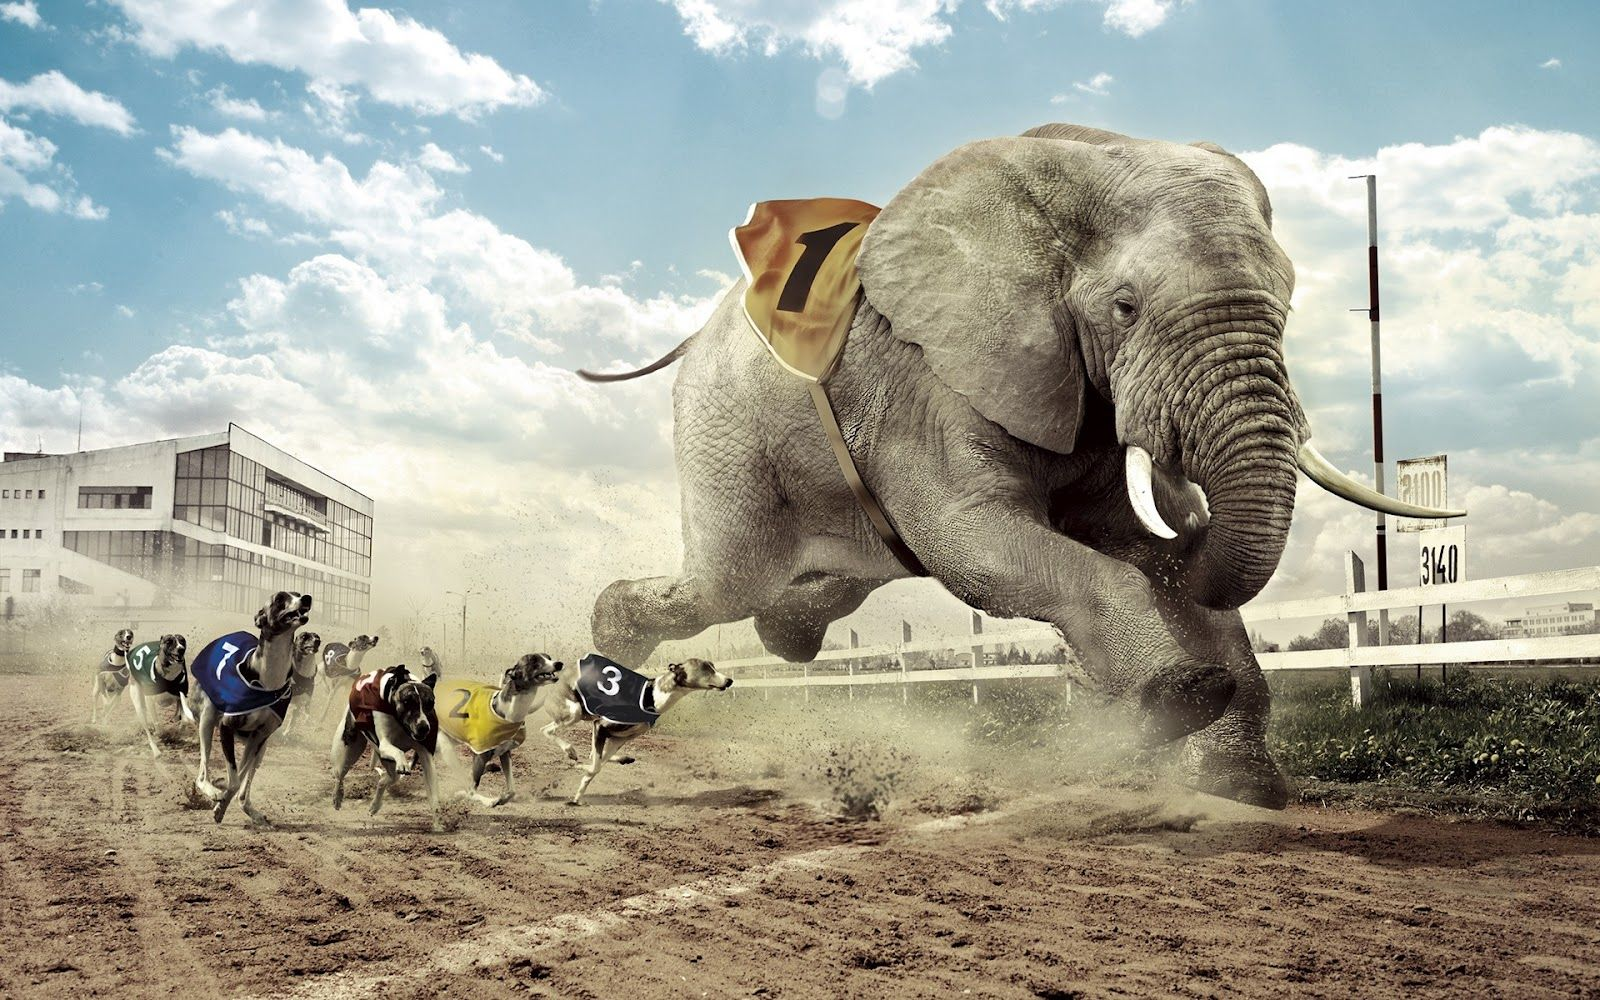 Dogs Vs Elephant Racing Photo Manipulation Hd Wallpaper